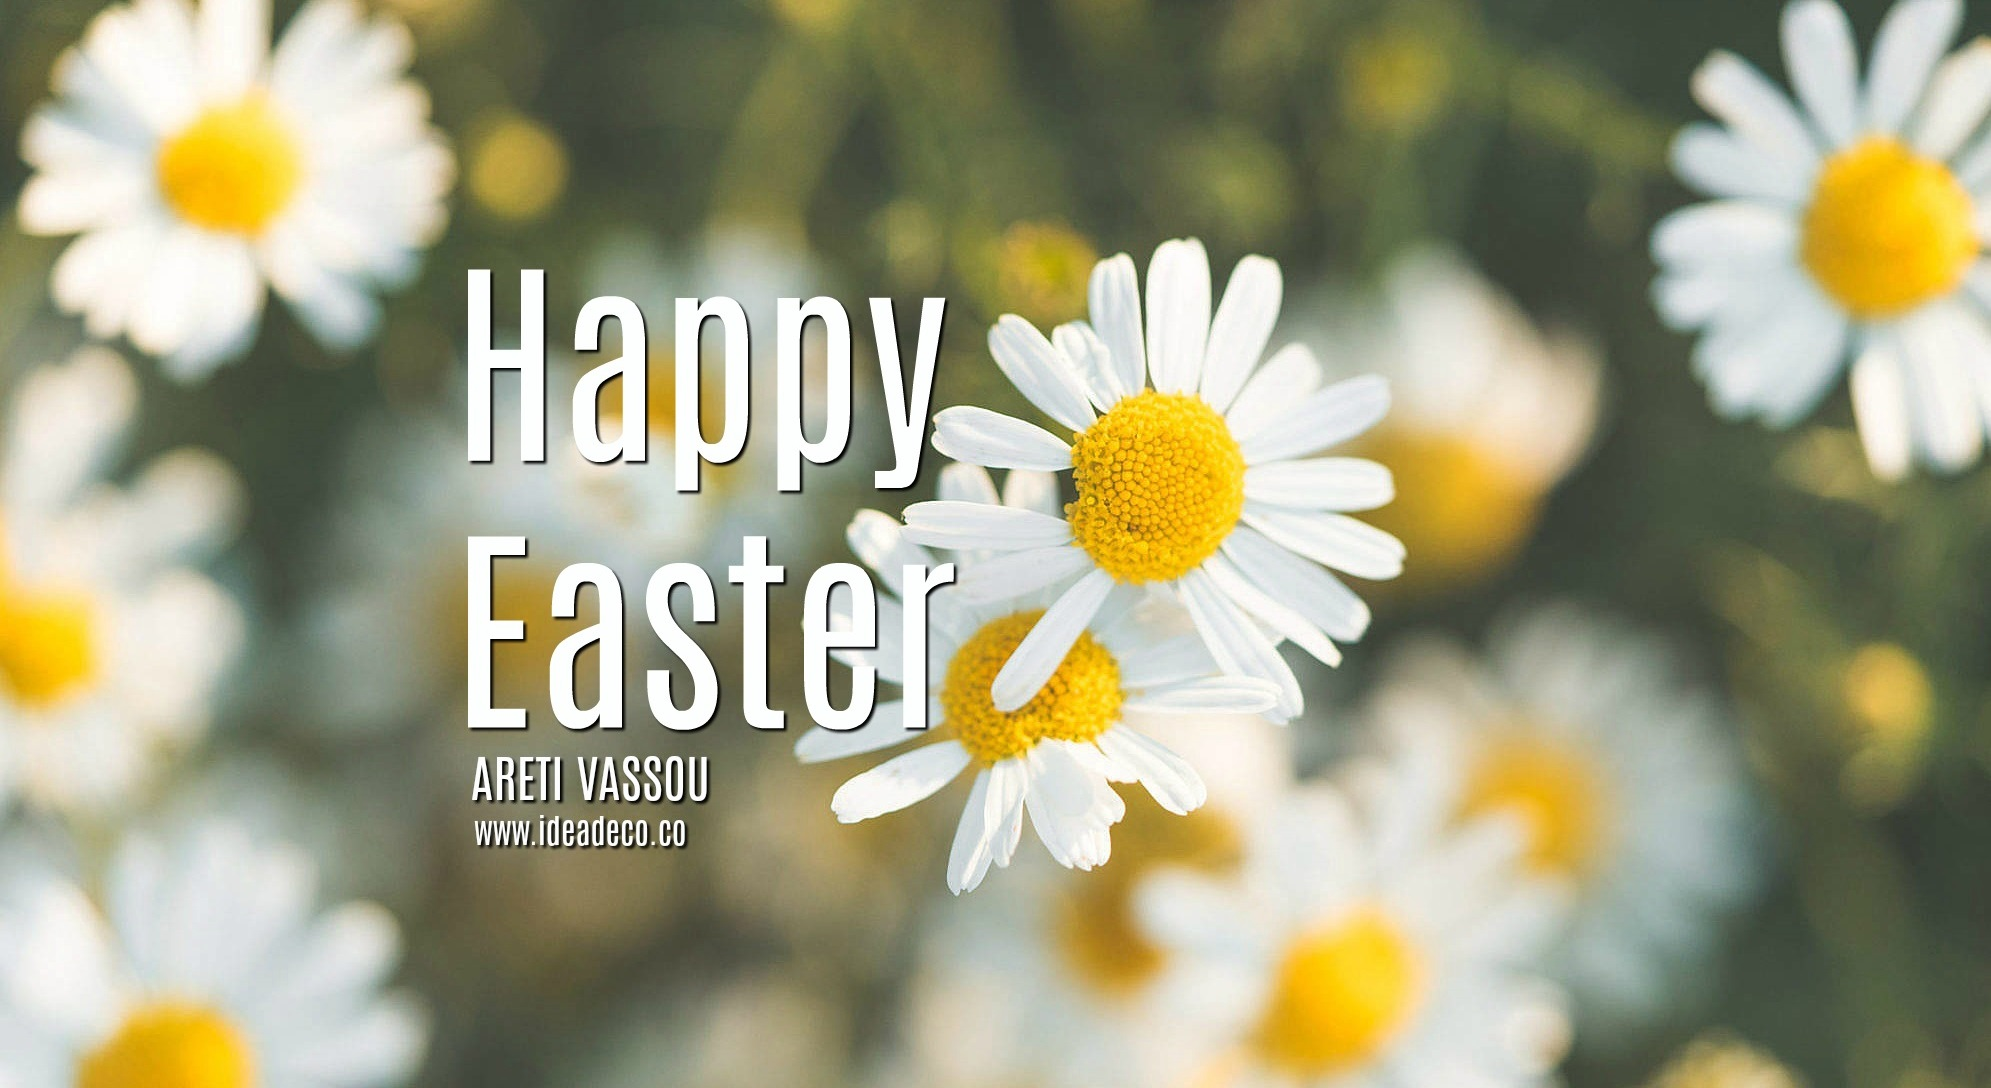 Happy Easter with Spring Daisy Flowers by Areti Vassou and Ideadeco Team